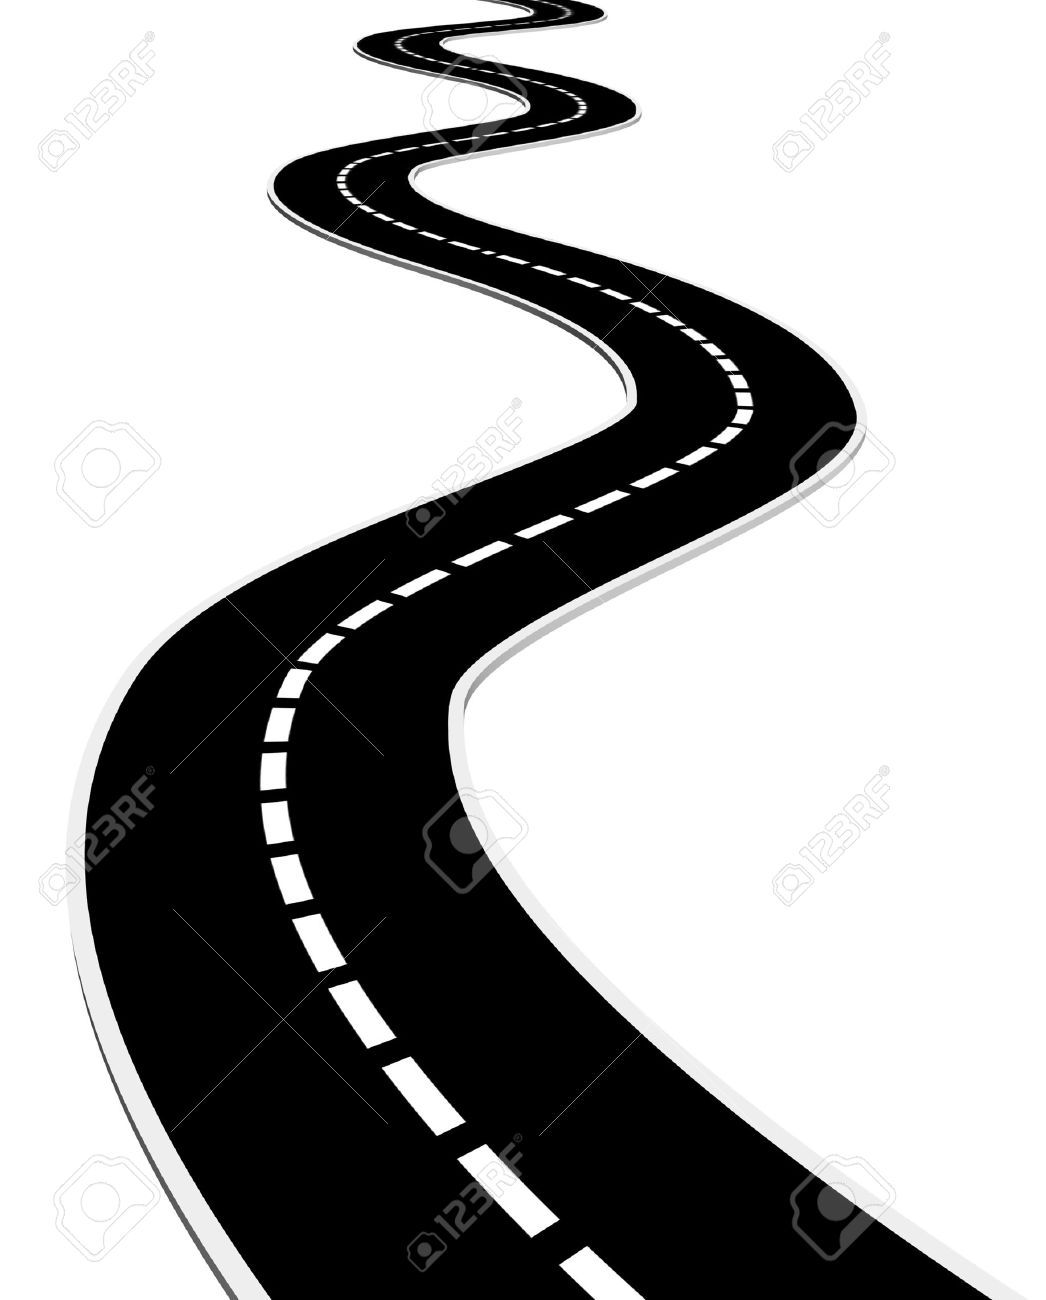 Race clipart road #14